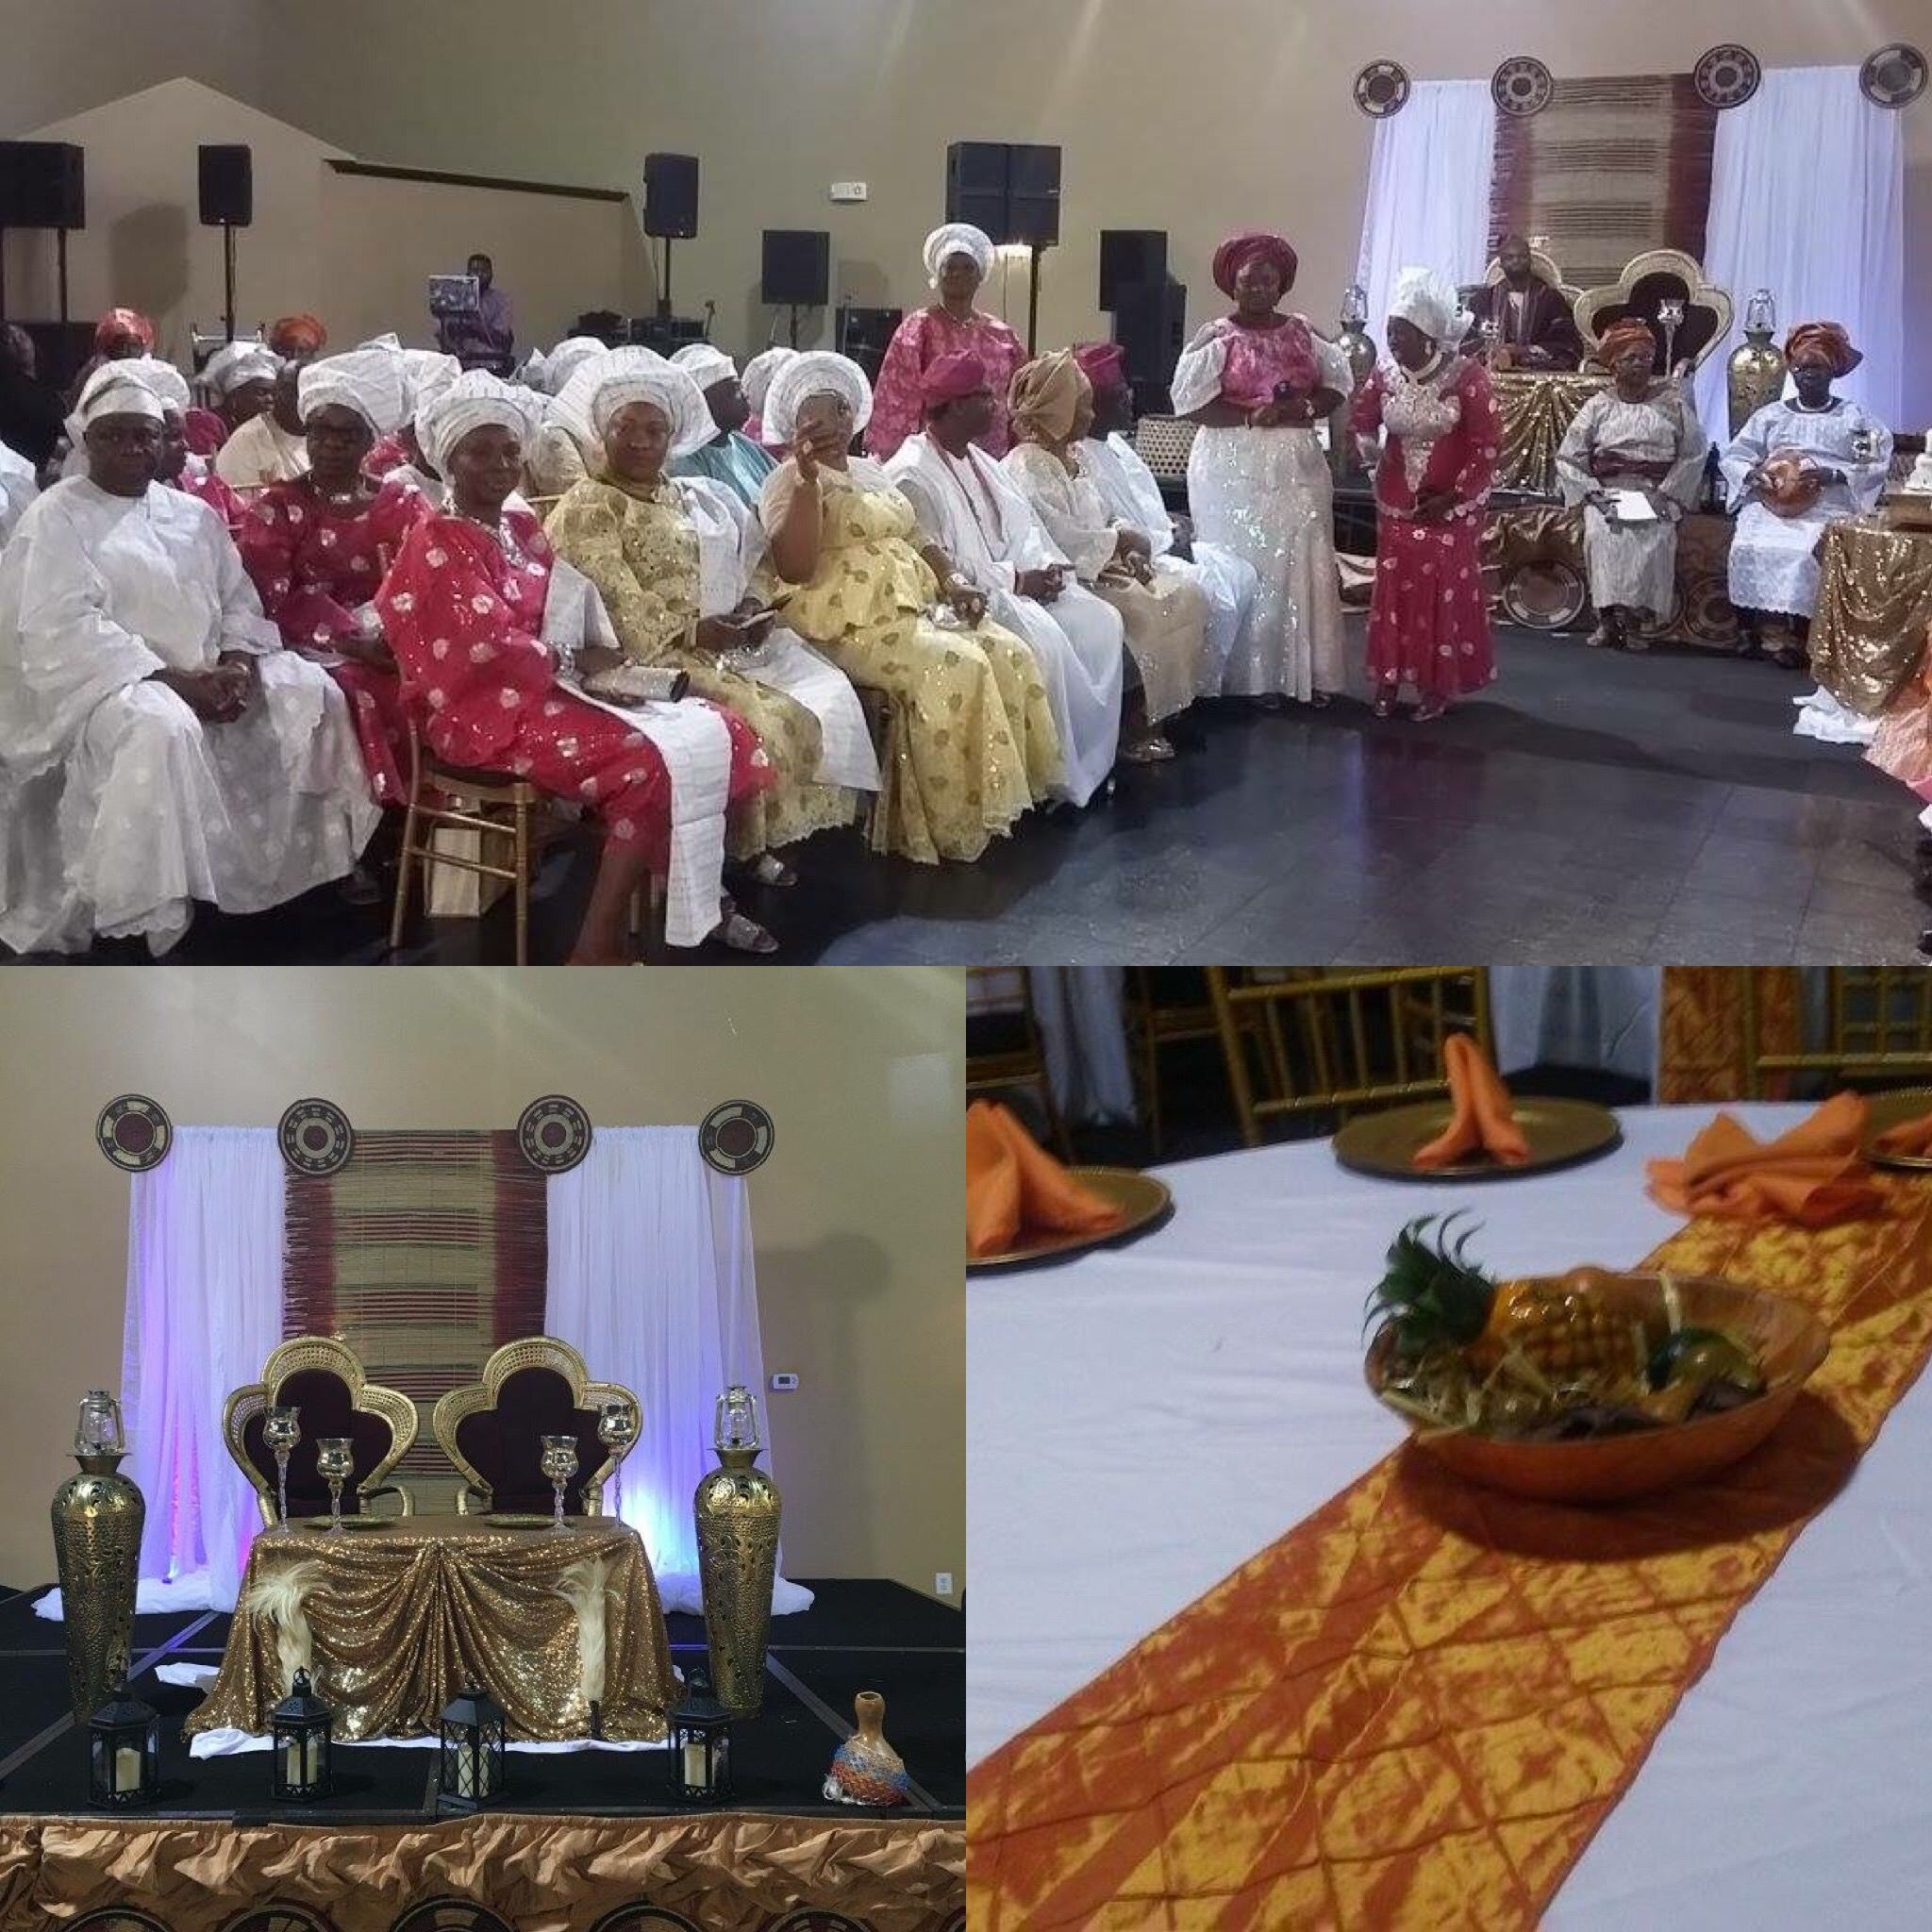 Nigerian wedding decoration images  Family and friends gather for a traditional nigerianwedding